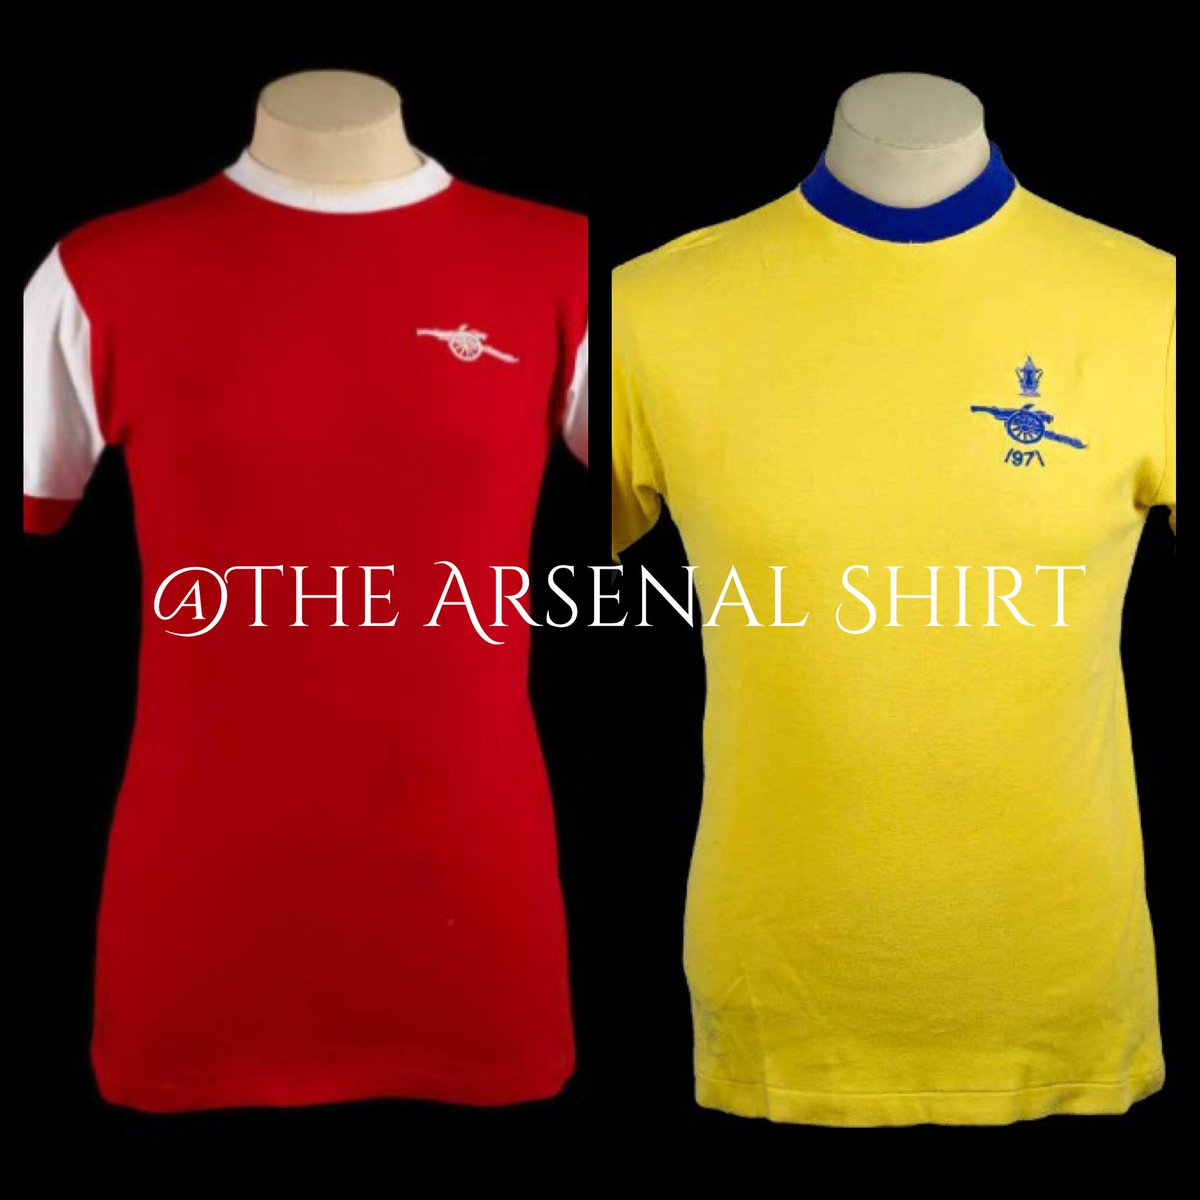 finest selection c22aa 33034 TheArsenalShirt on Twitter: